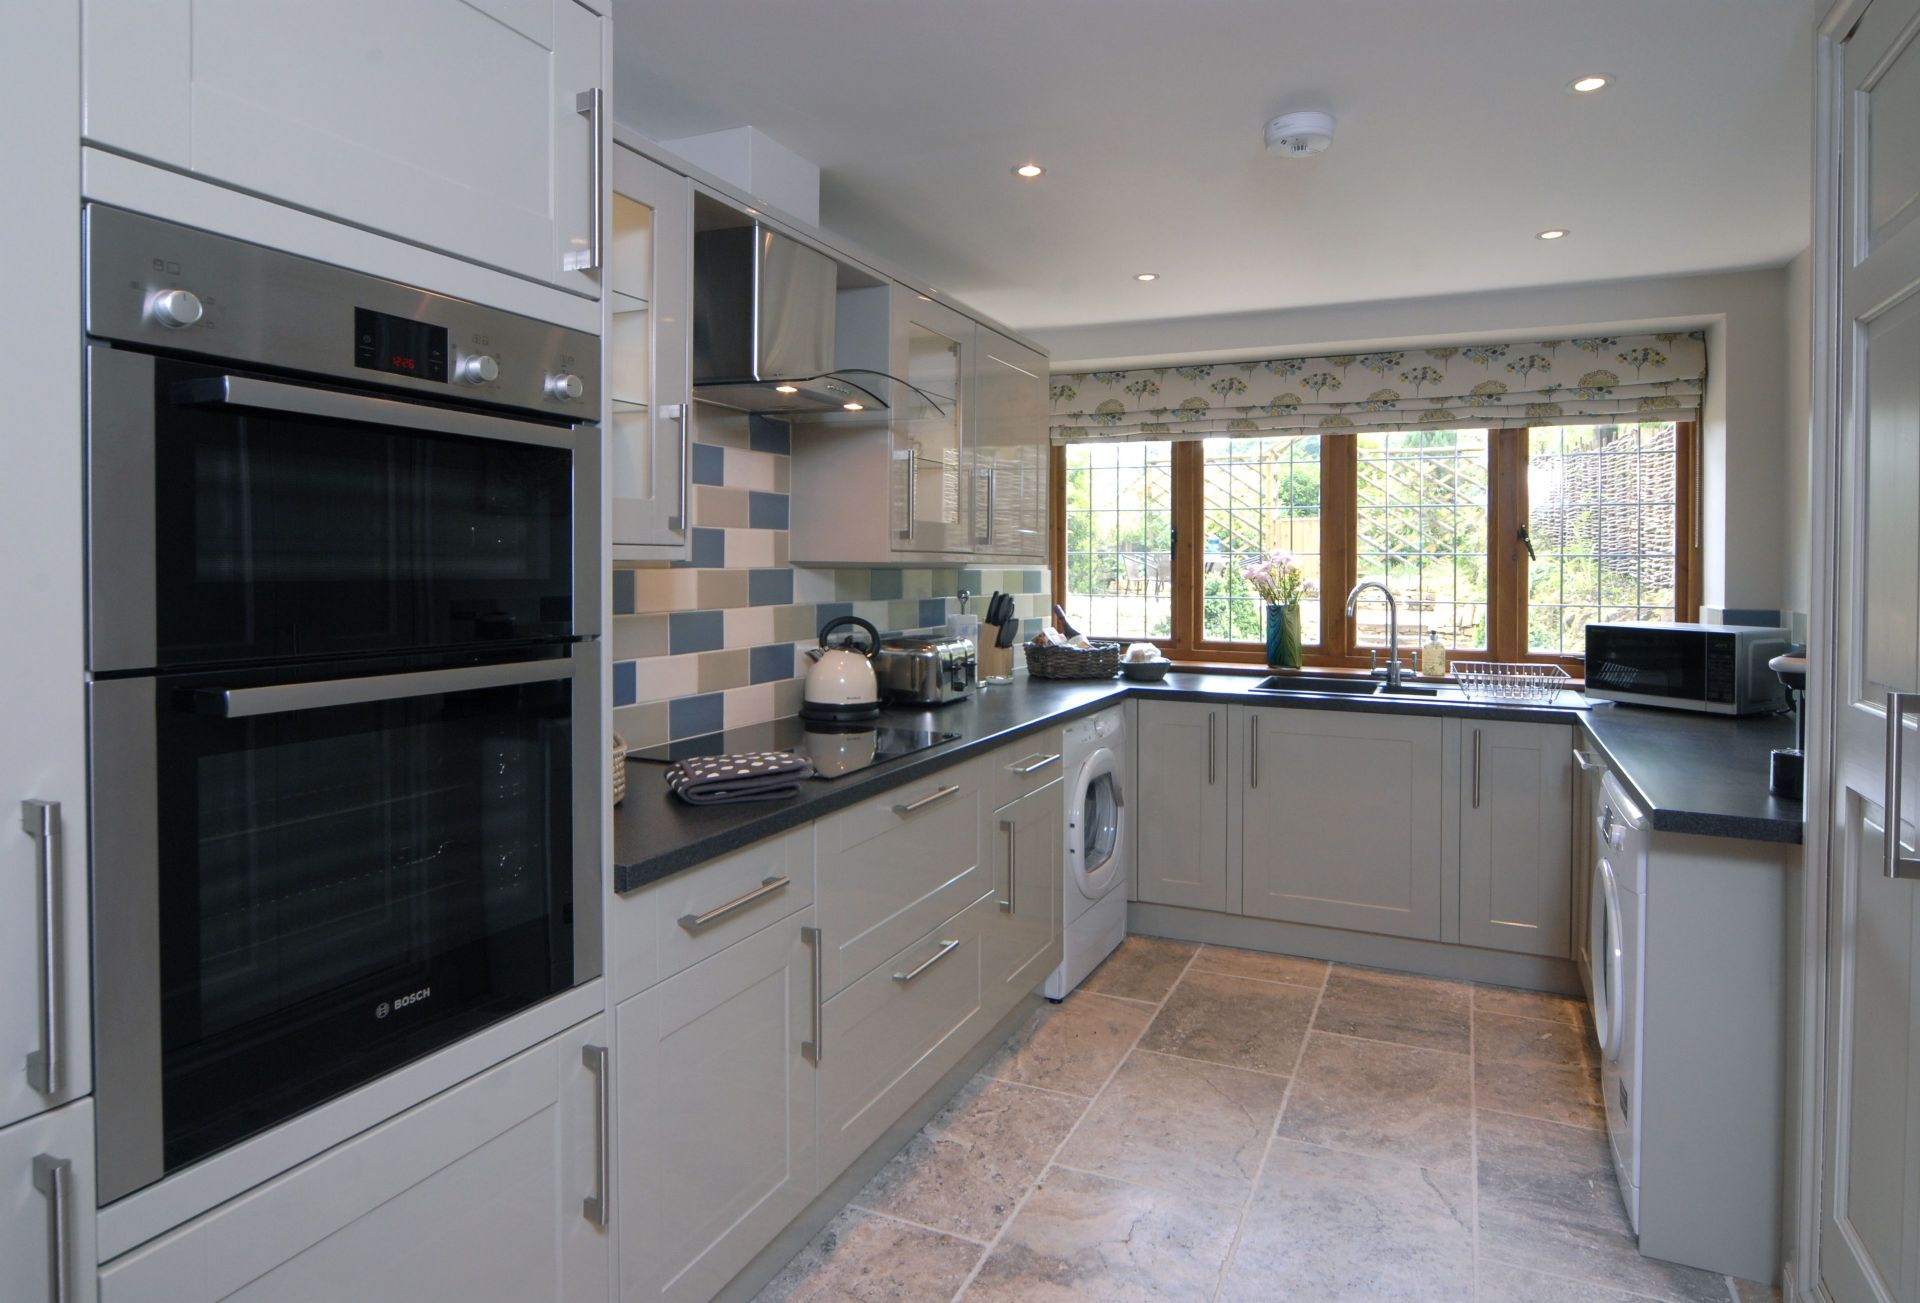 Ground floor: The fully fitted kitchen